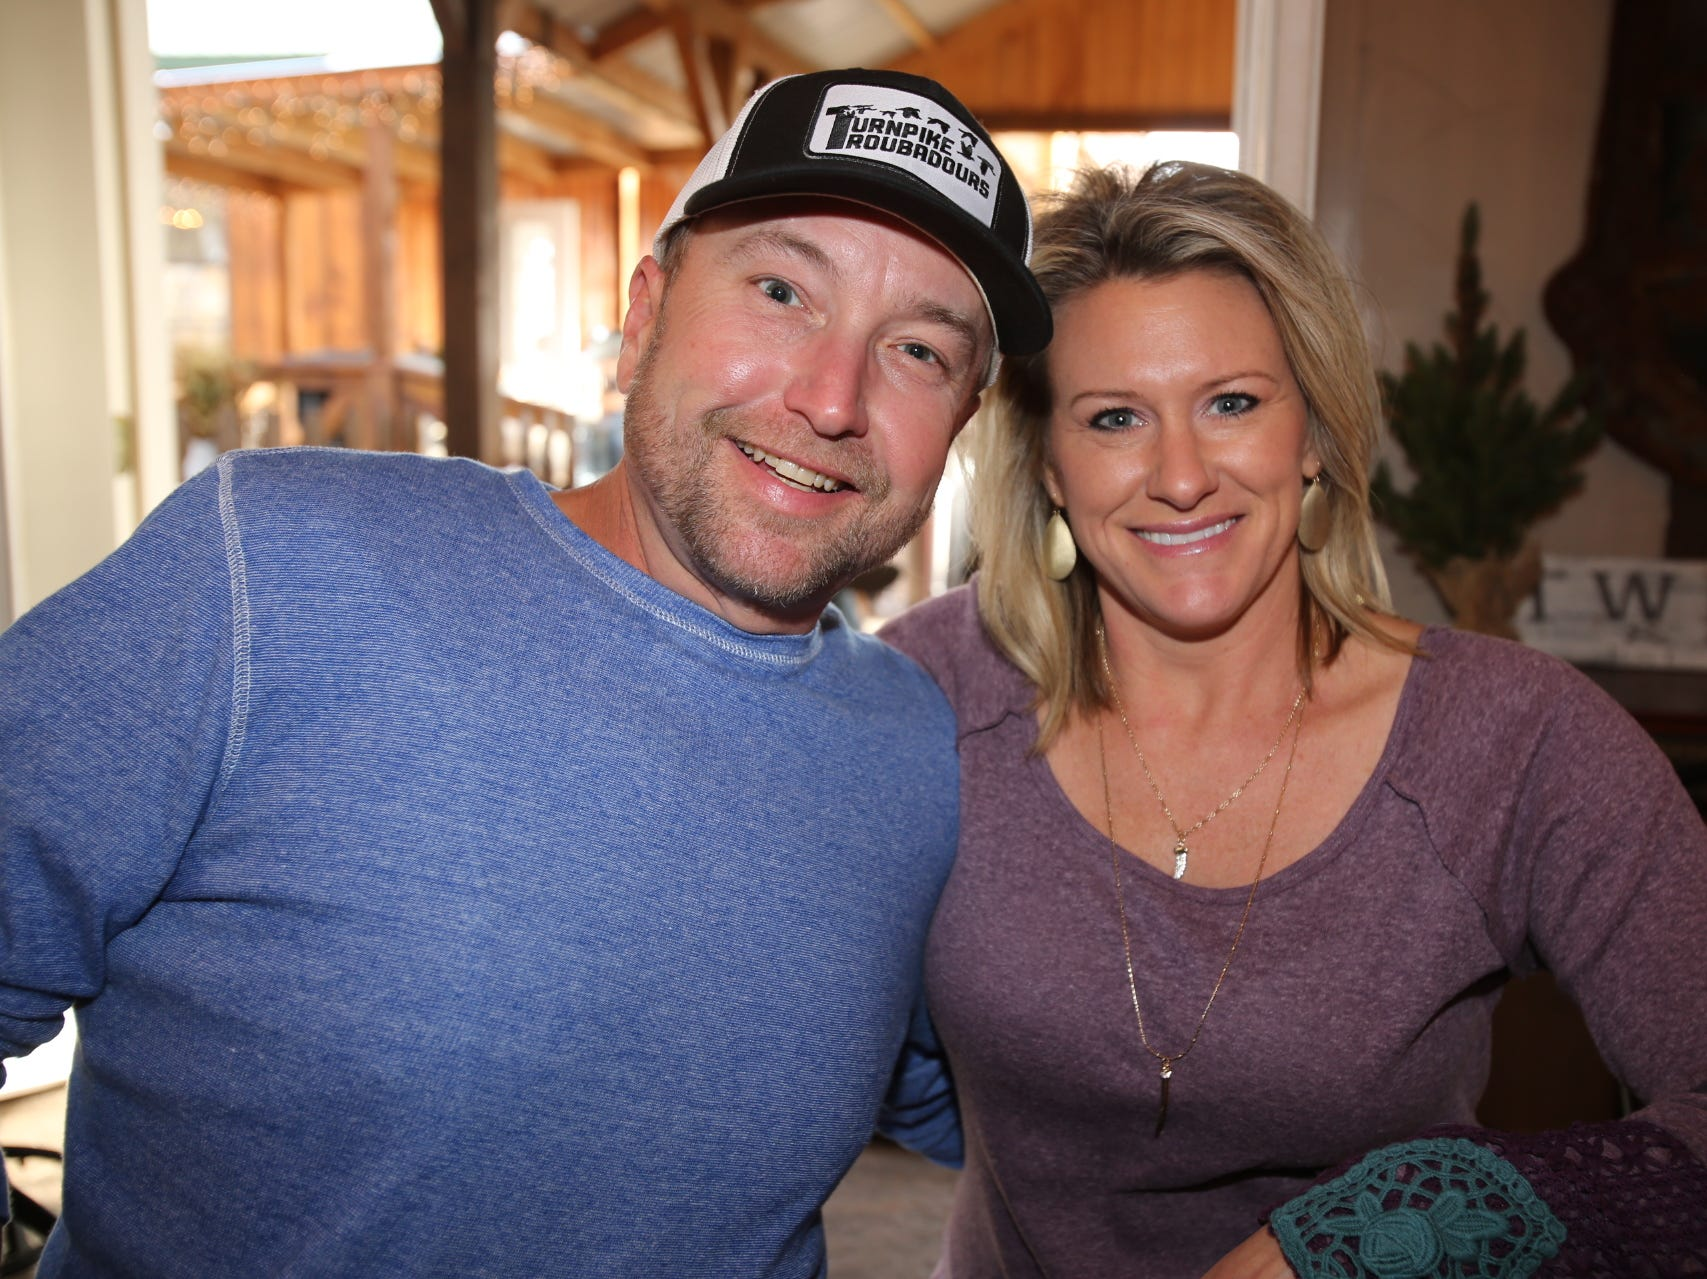 Mark and Christy Faught